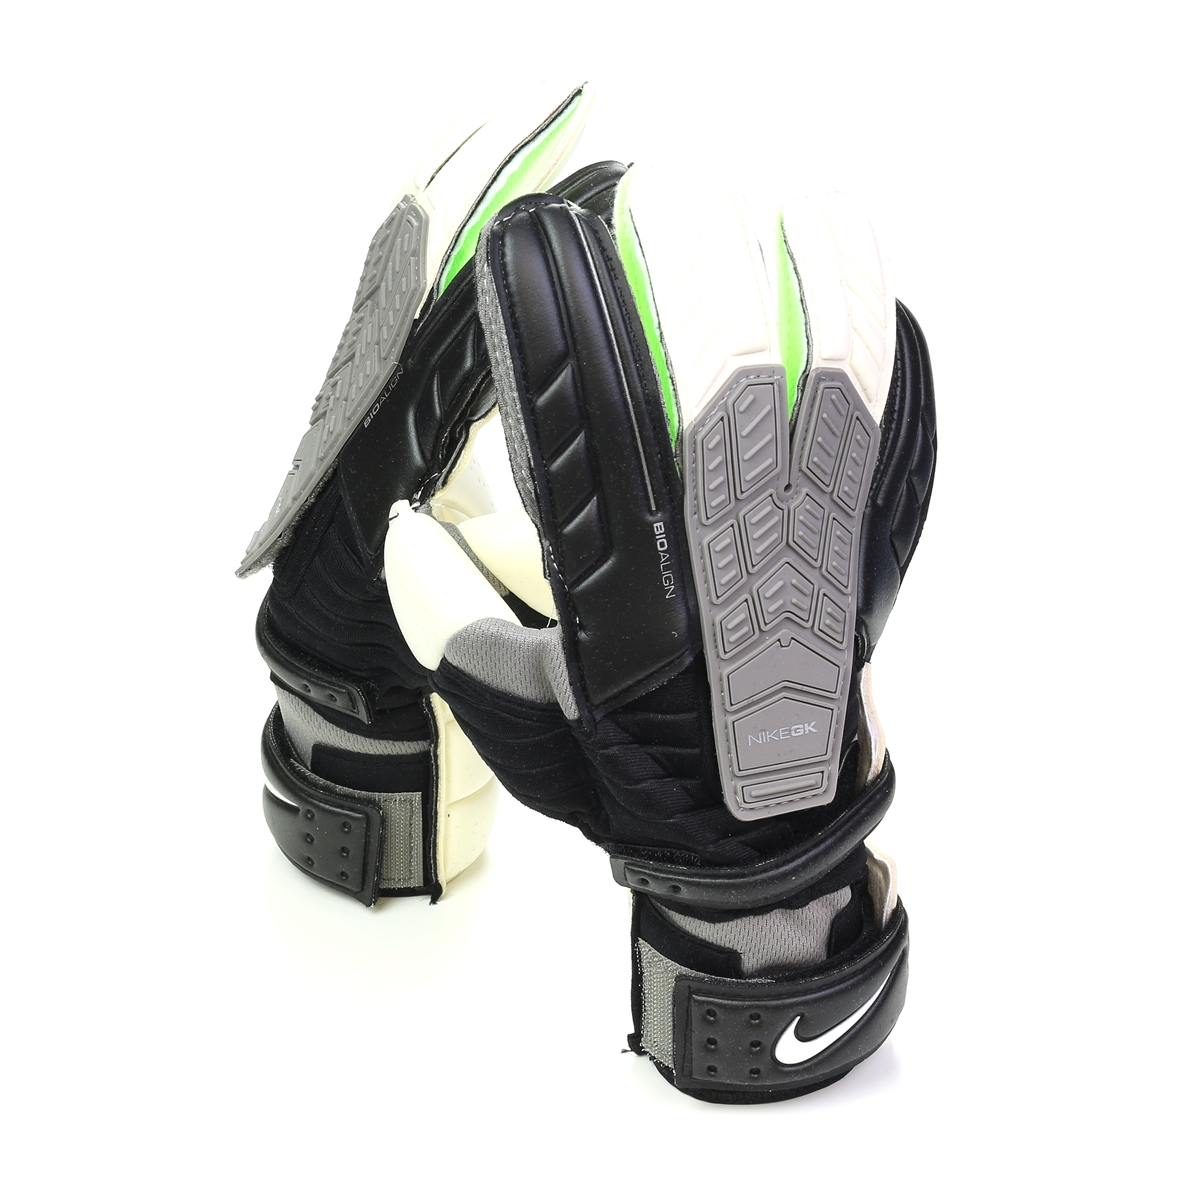 Black nike goalkeeper gloves - Nike Confidence Soccer Goalkeeper Glove Black White